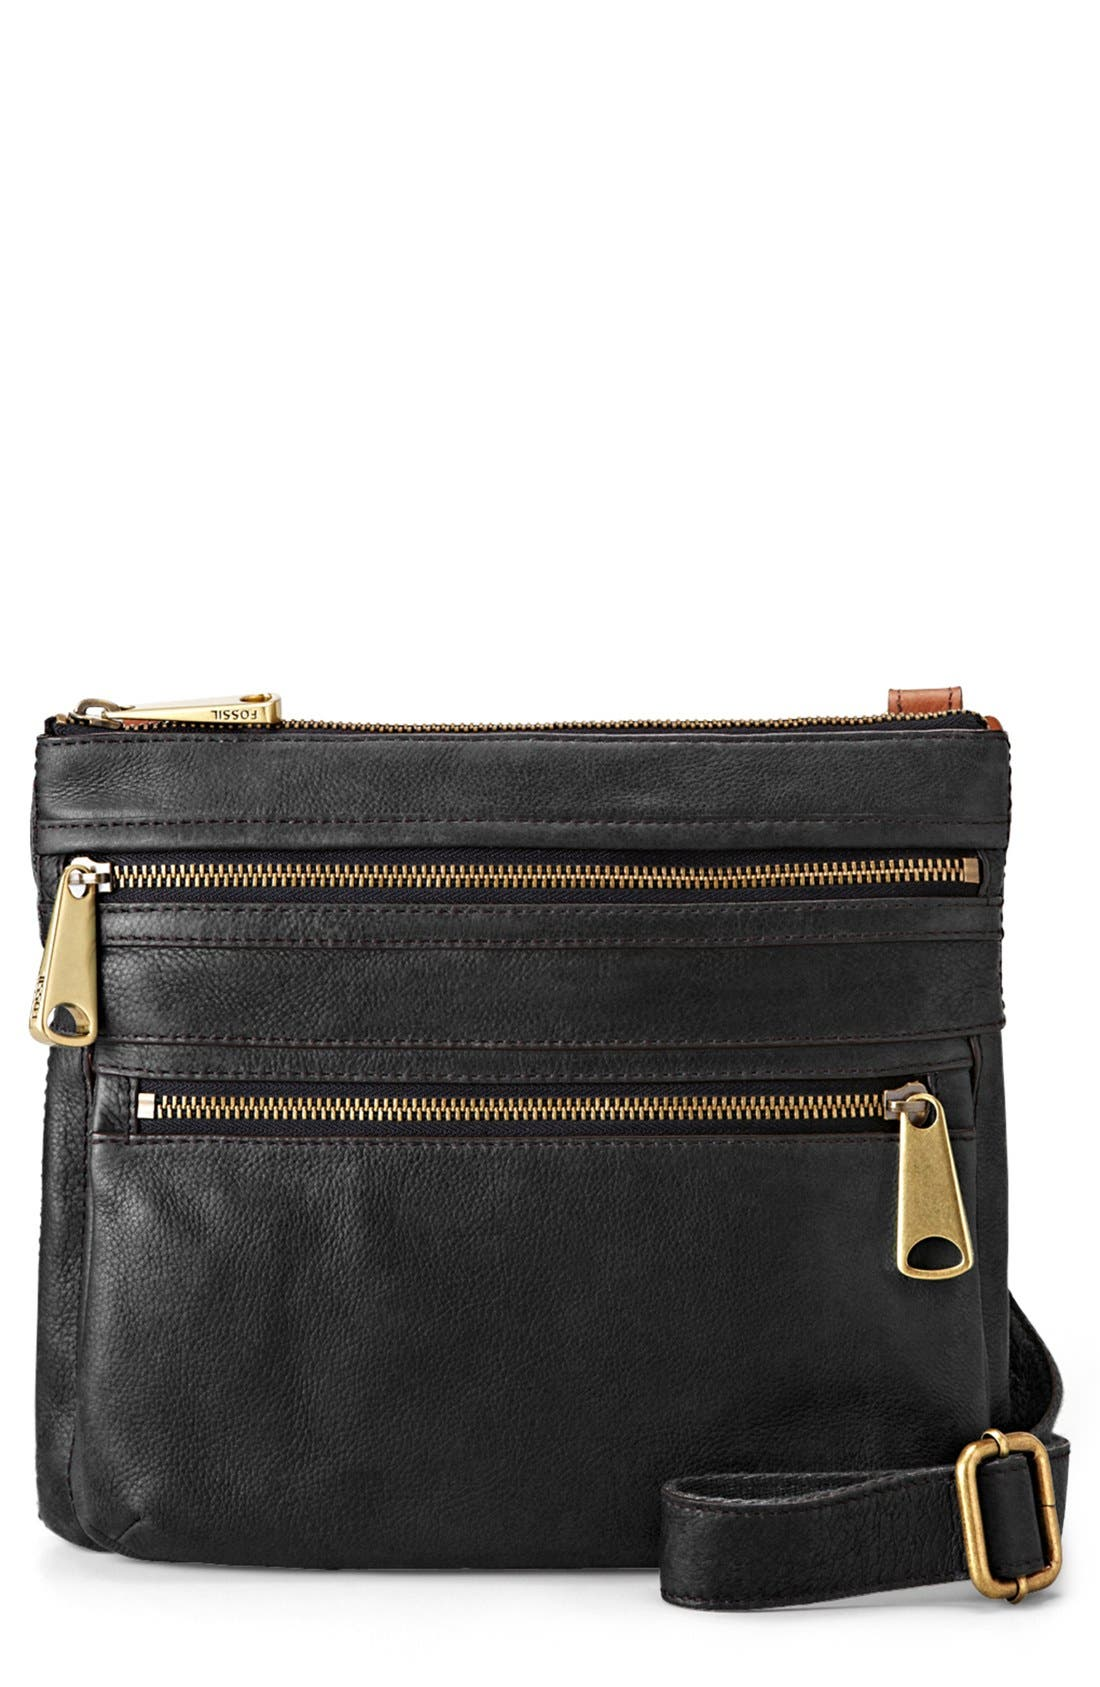 'Explorer' Crossbody Bag, Main, color, 001